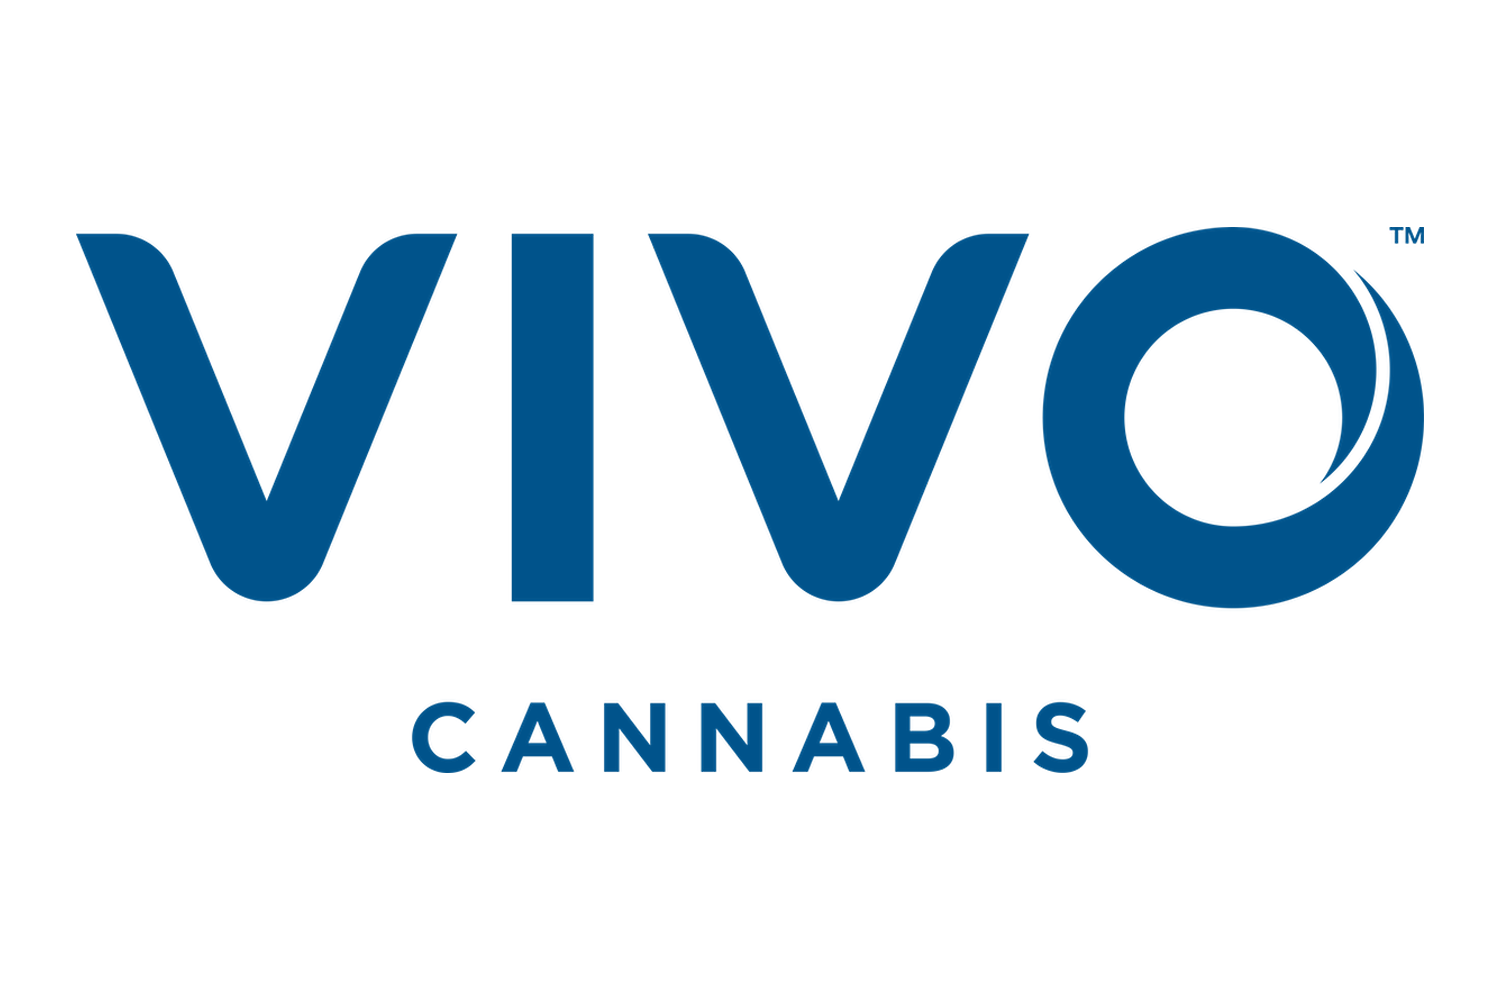 vivo cannabis